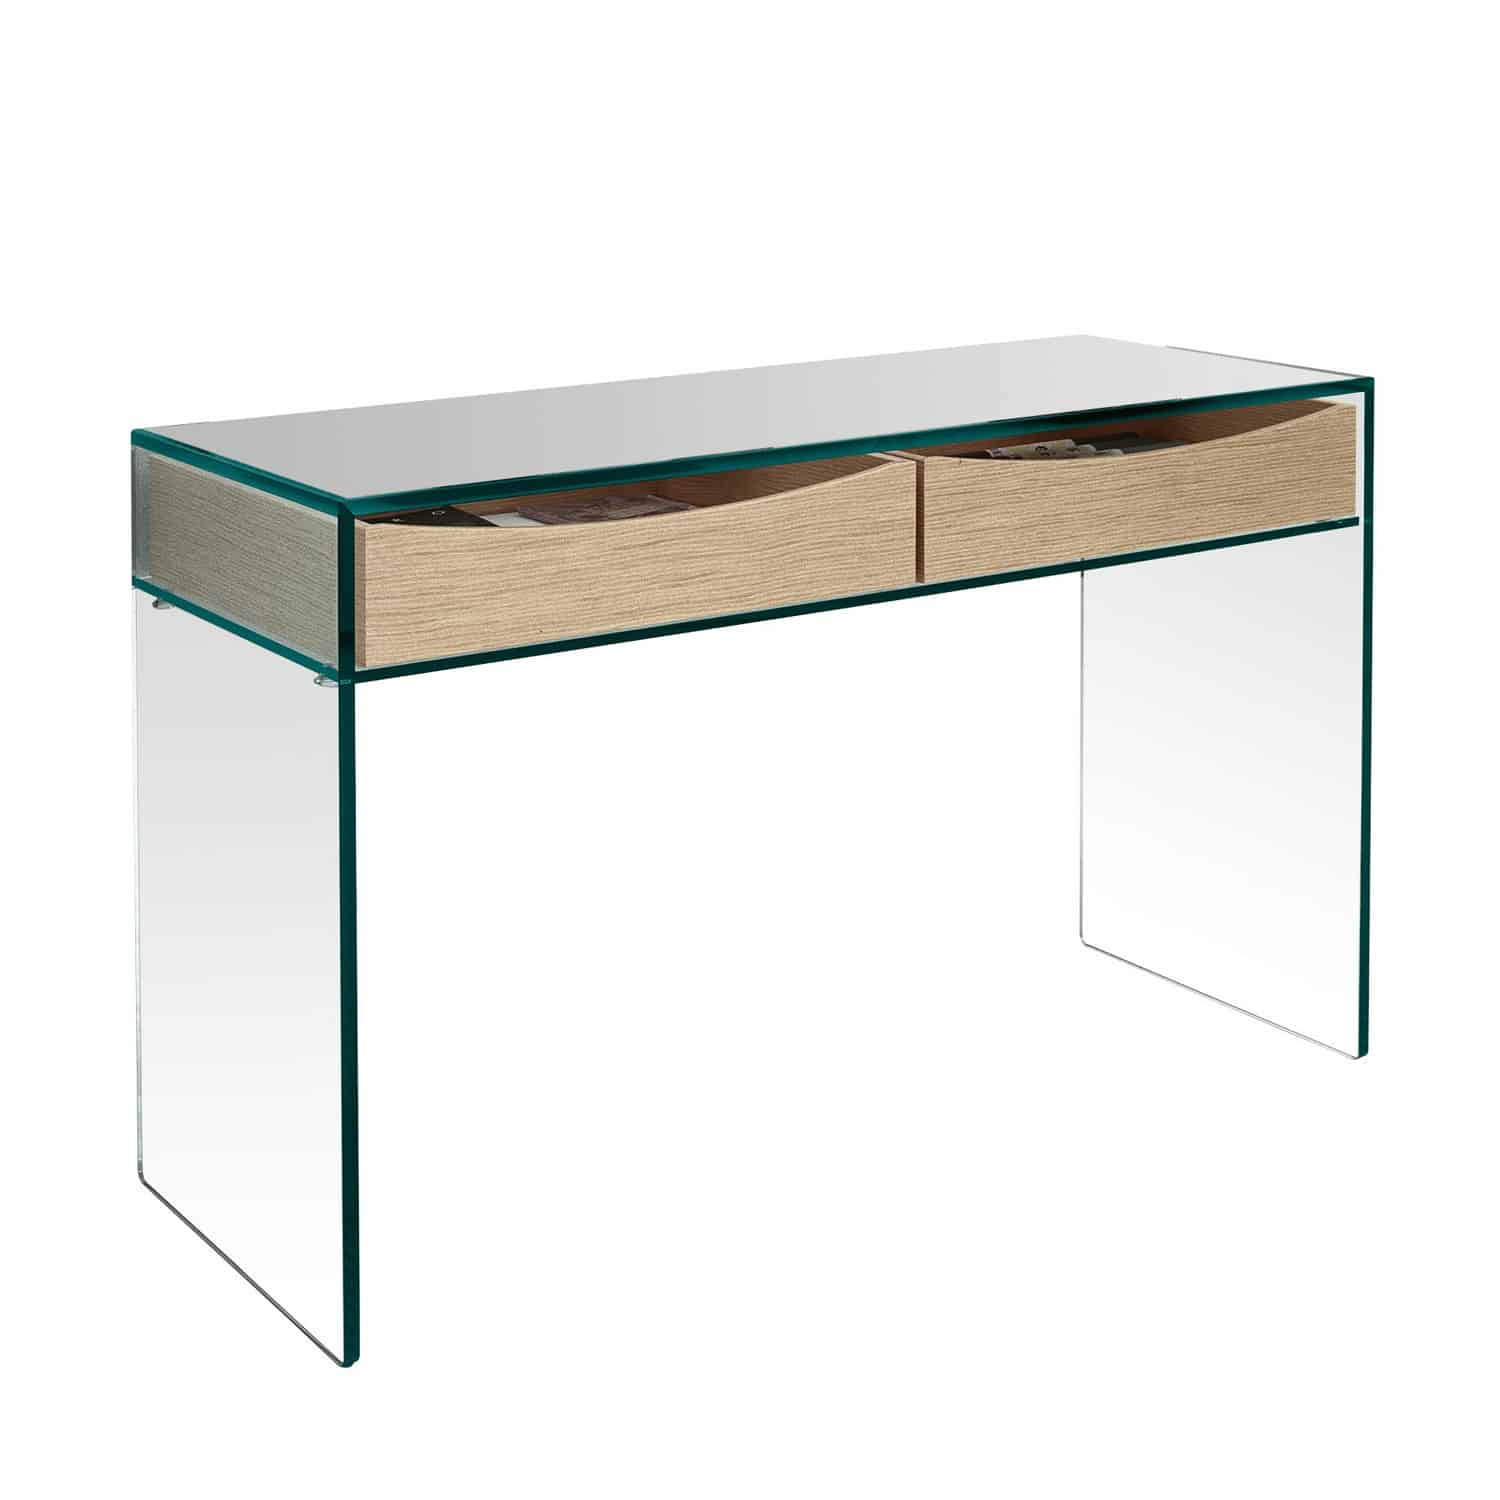 gulliver glass console table with shelf drawers inch chrome metal accent sofa white coffee storage furniture fargo crystal drawer knobs outdoor patio umbrella kmart mini lamps